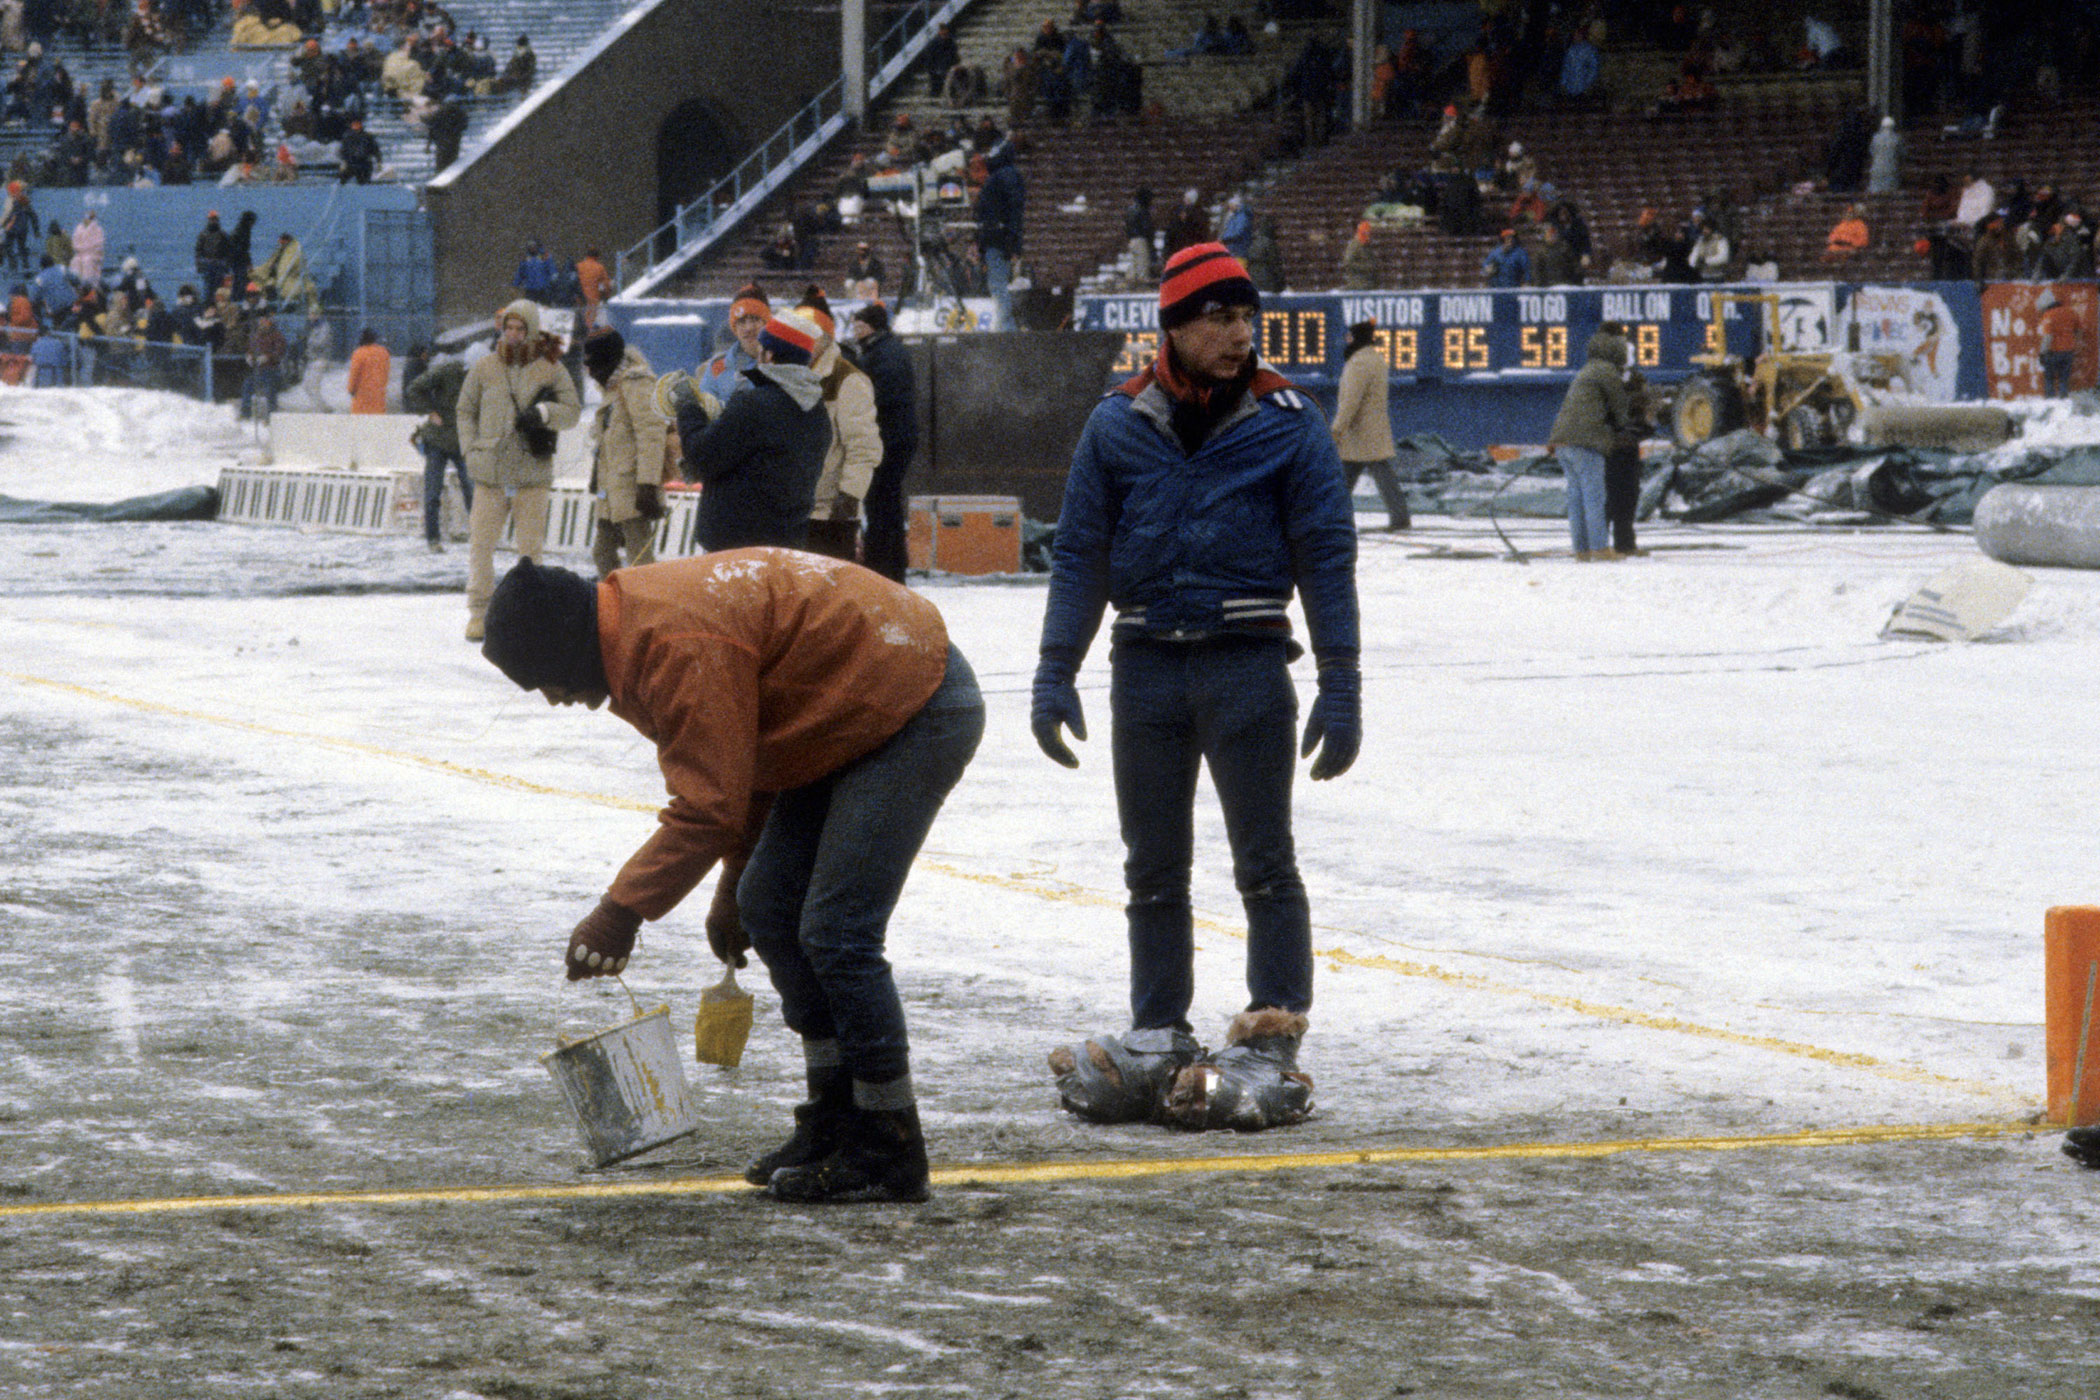 Temperature: -5°F. On Jan. 4, 1981, the Oakland raiders defeated the Cleveland Browns in a subzero NFL football playoff game. Here, a member of the grounds crew retouches the frosty field at Cleveland Municipal Stadium in Cleveland.